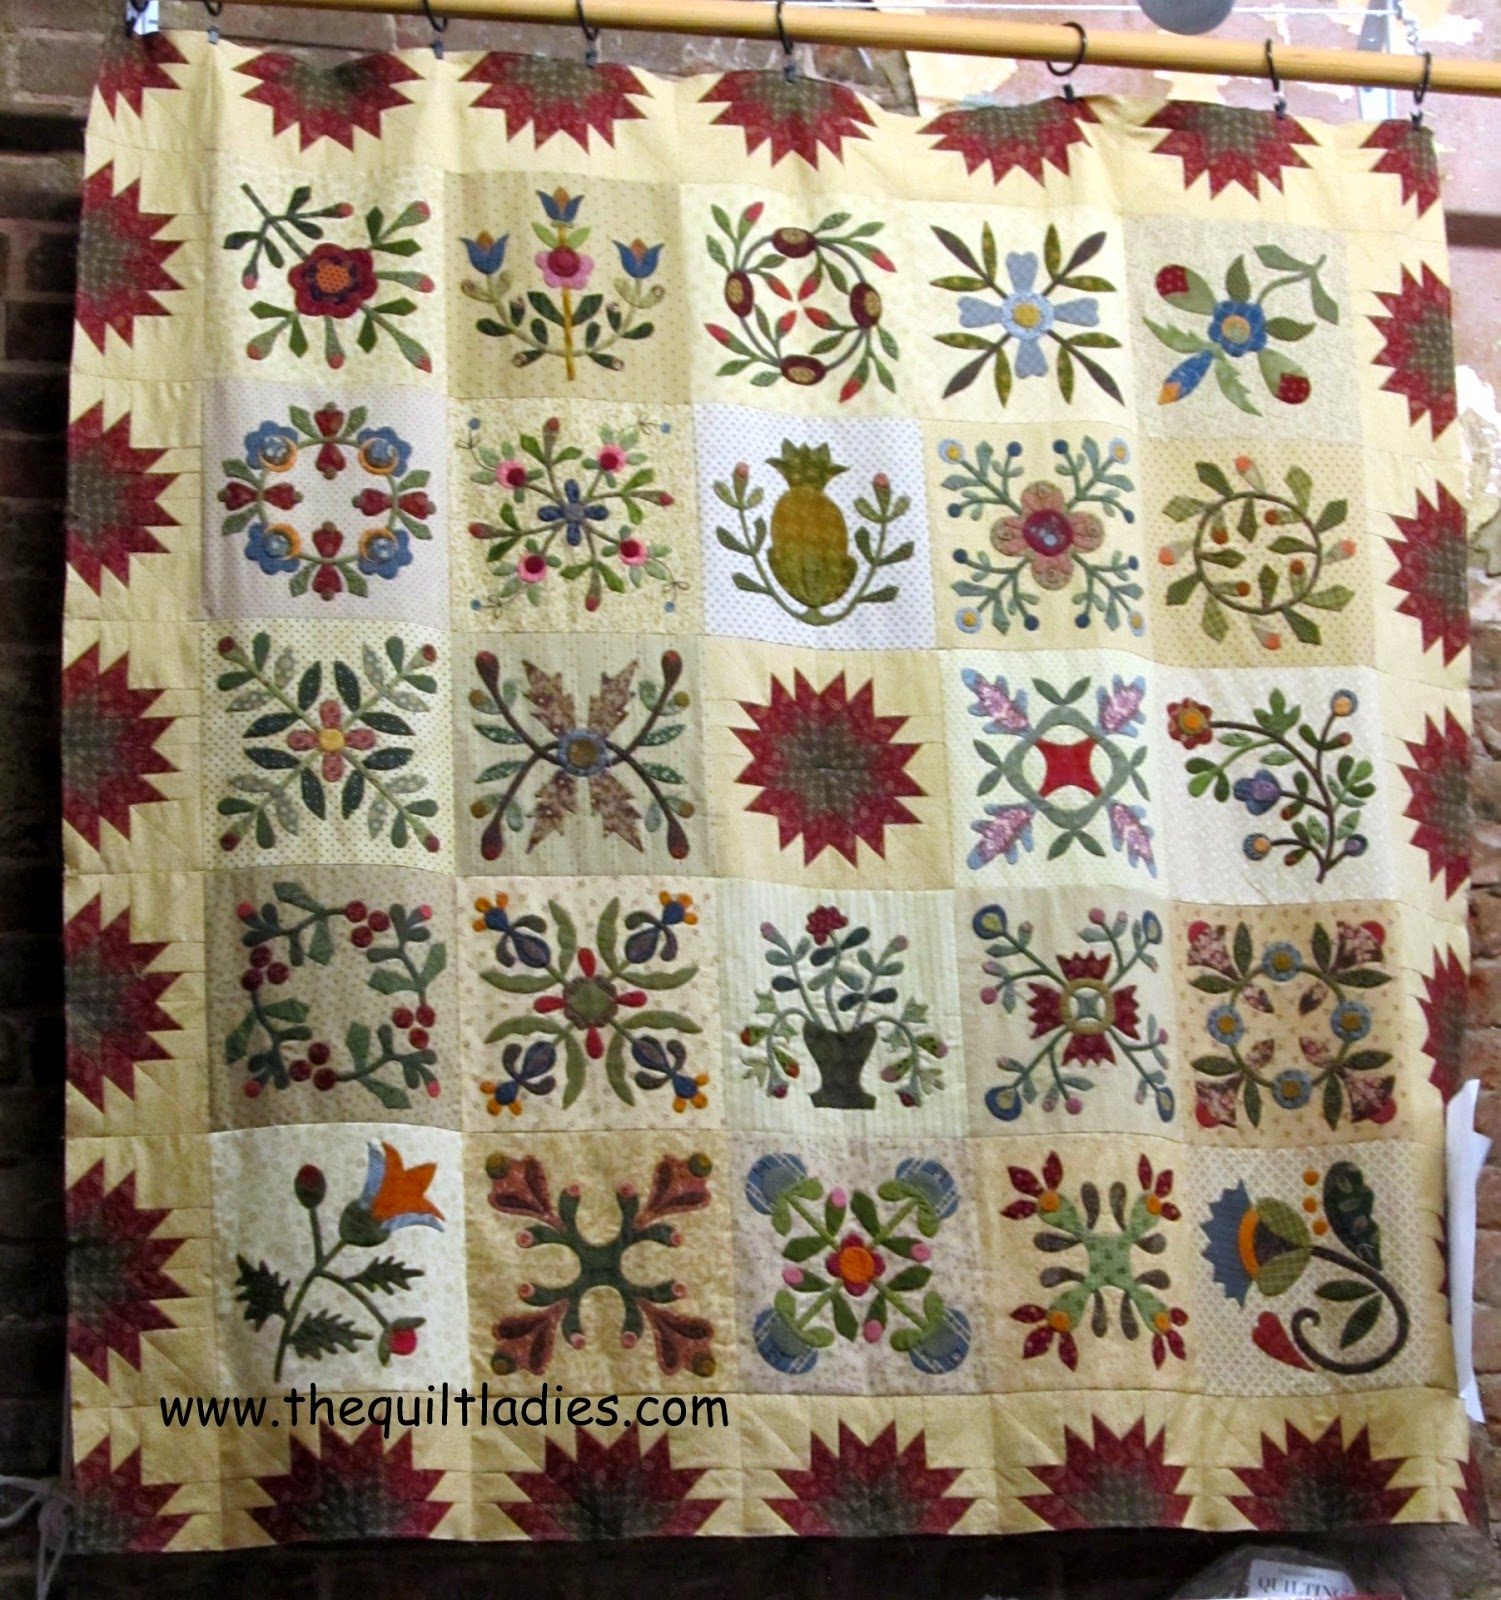 quilts from the quilt ladies site